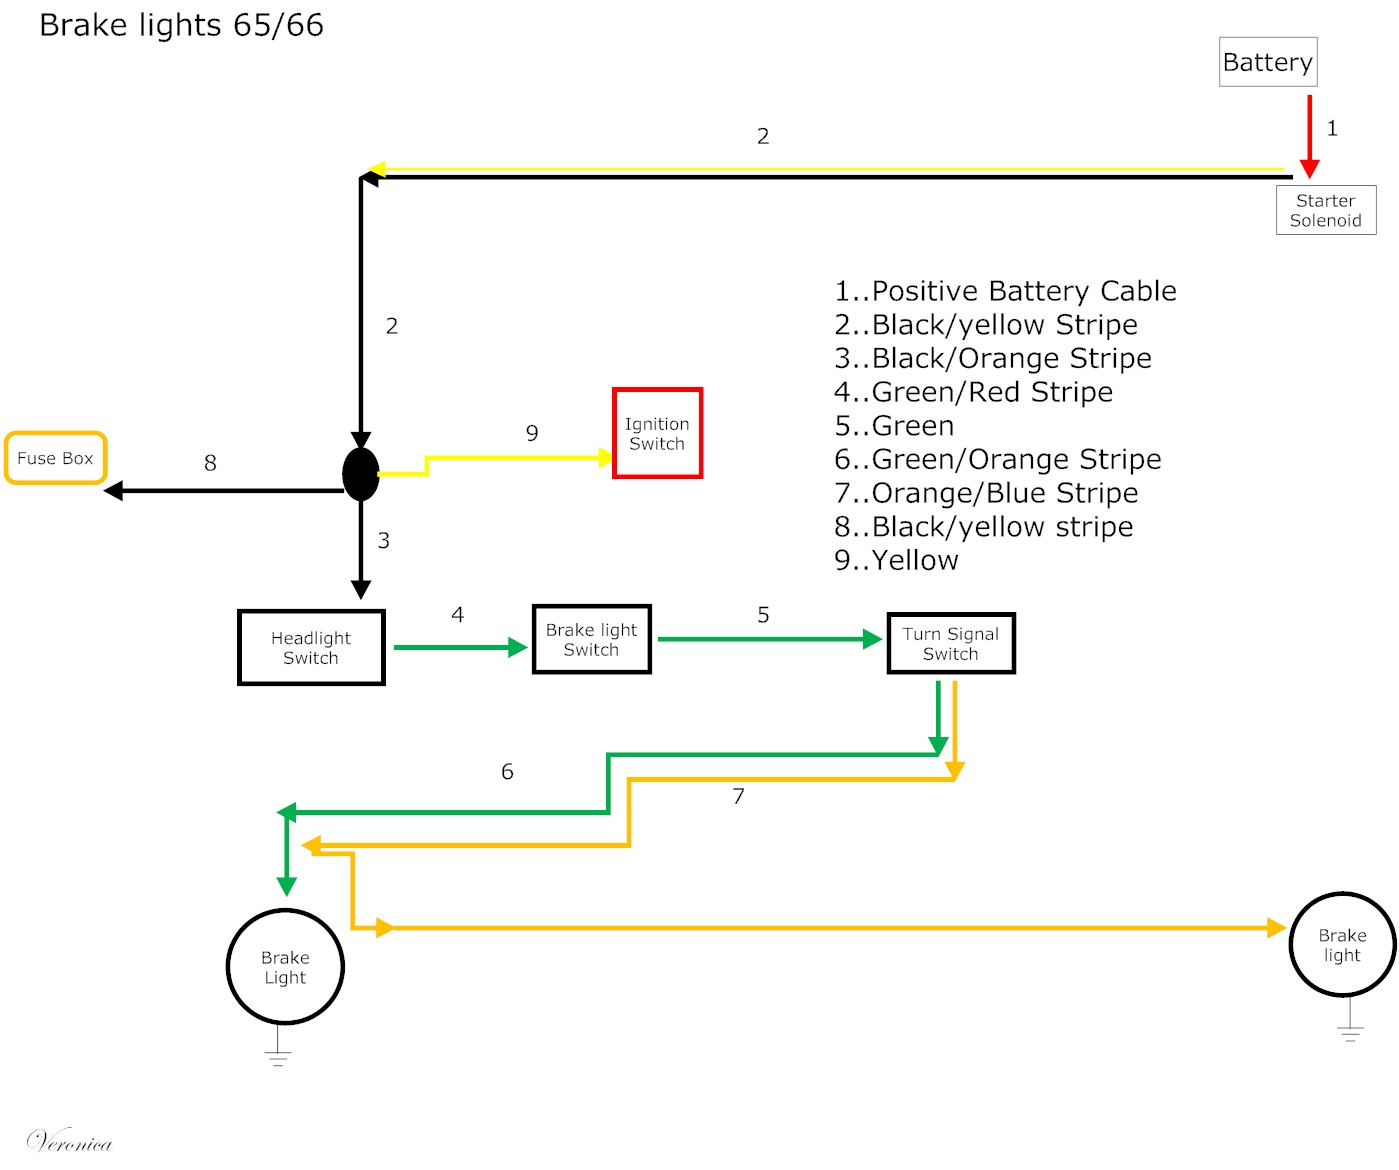 1995 Jeep Cherokee Headlight Wiring Diagram Will Be A Thing 95 The Care And Feeding Of Ponies 1966 Mustang Diagrams 96